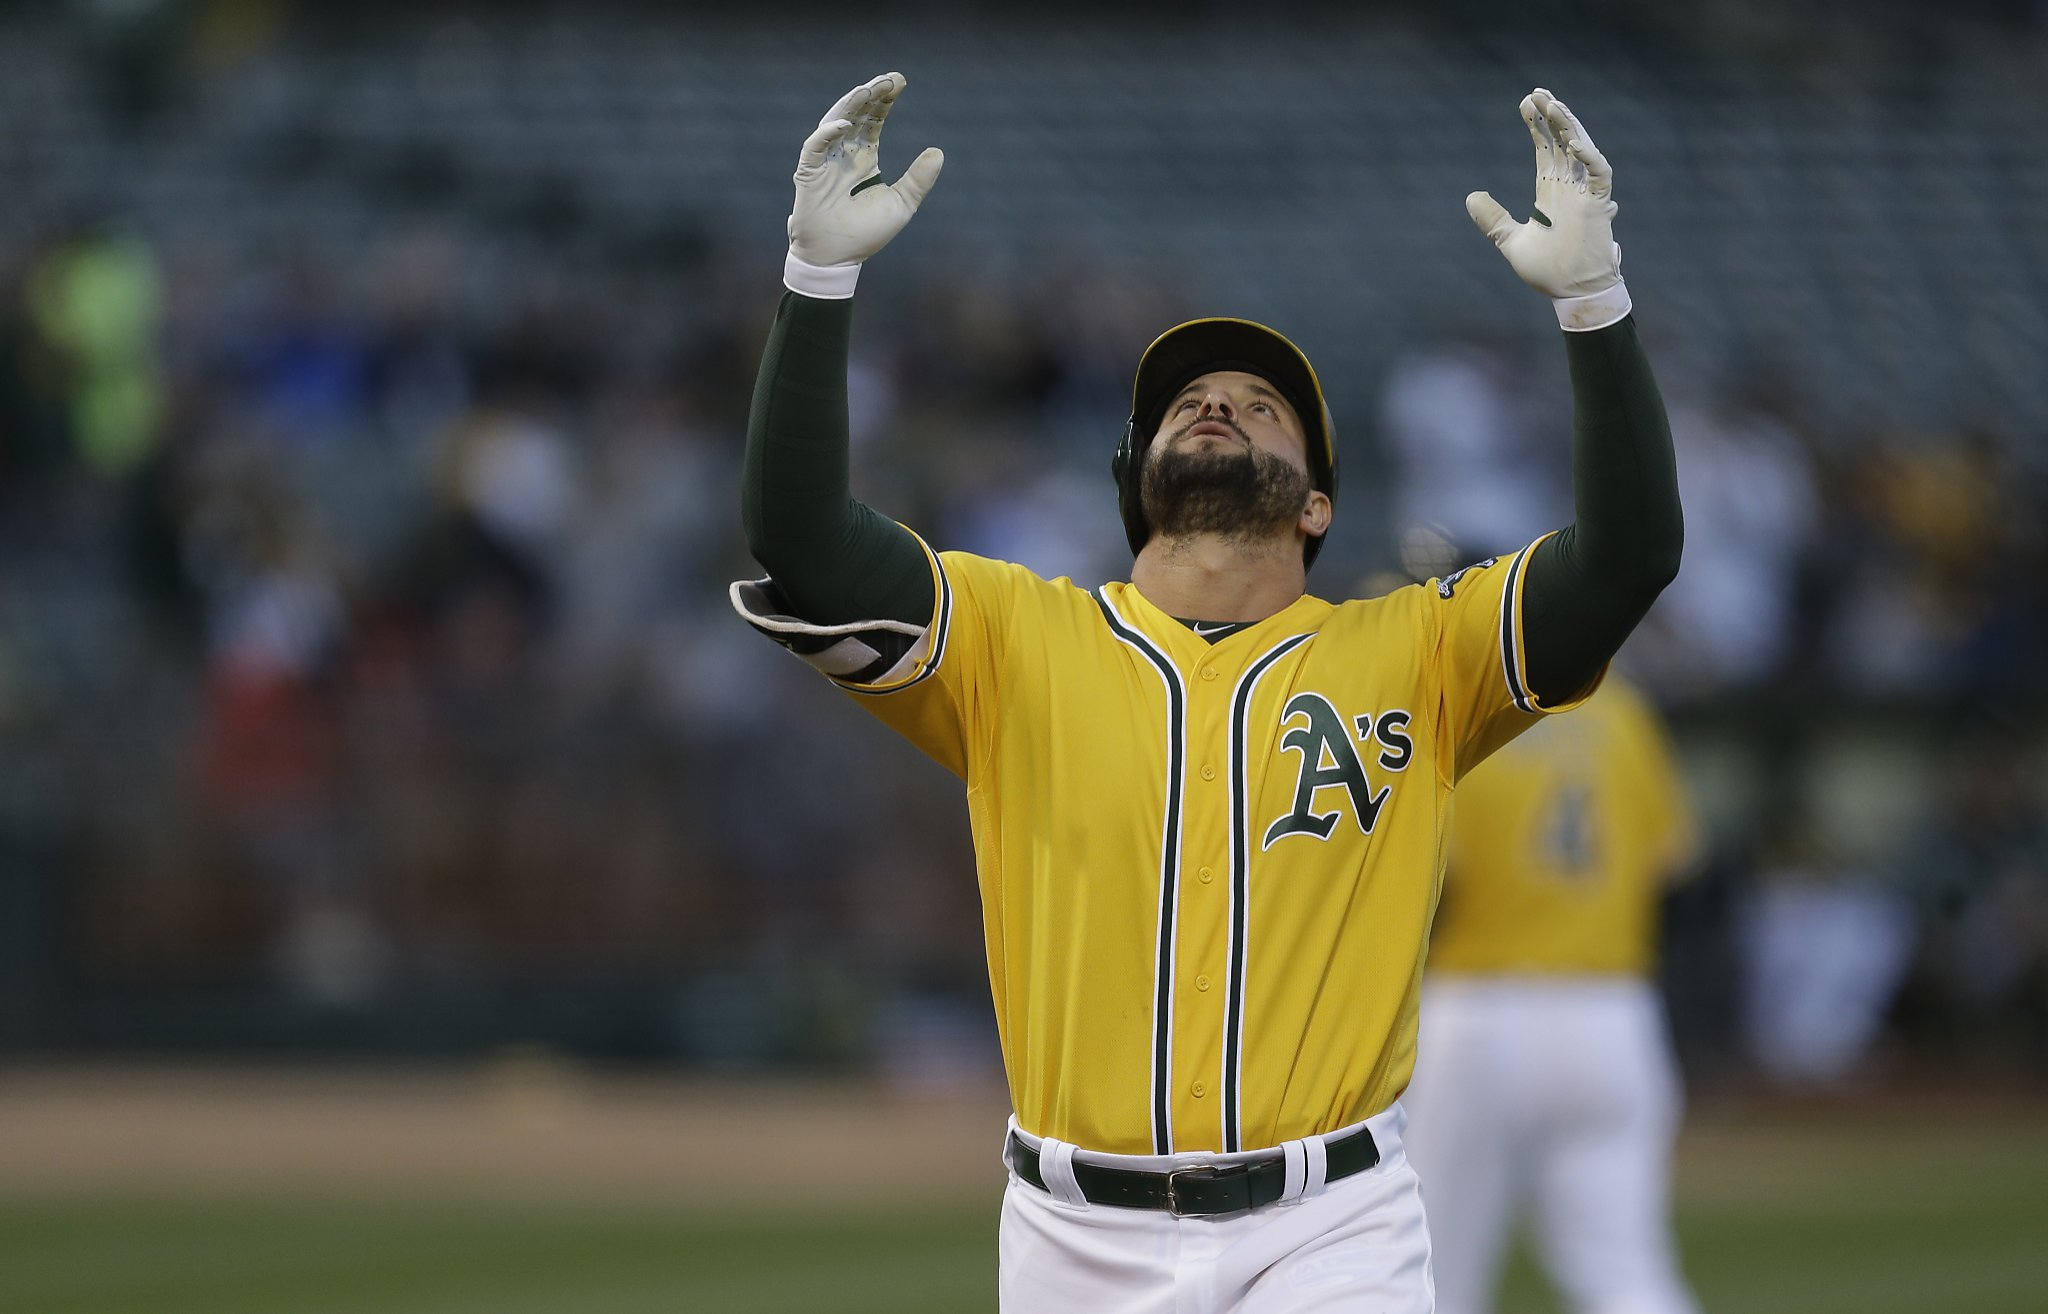 Yonder Alonso out of A's lineup again, bench will be thin ...